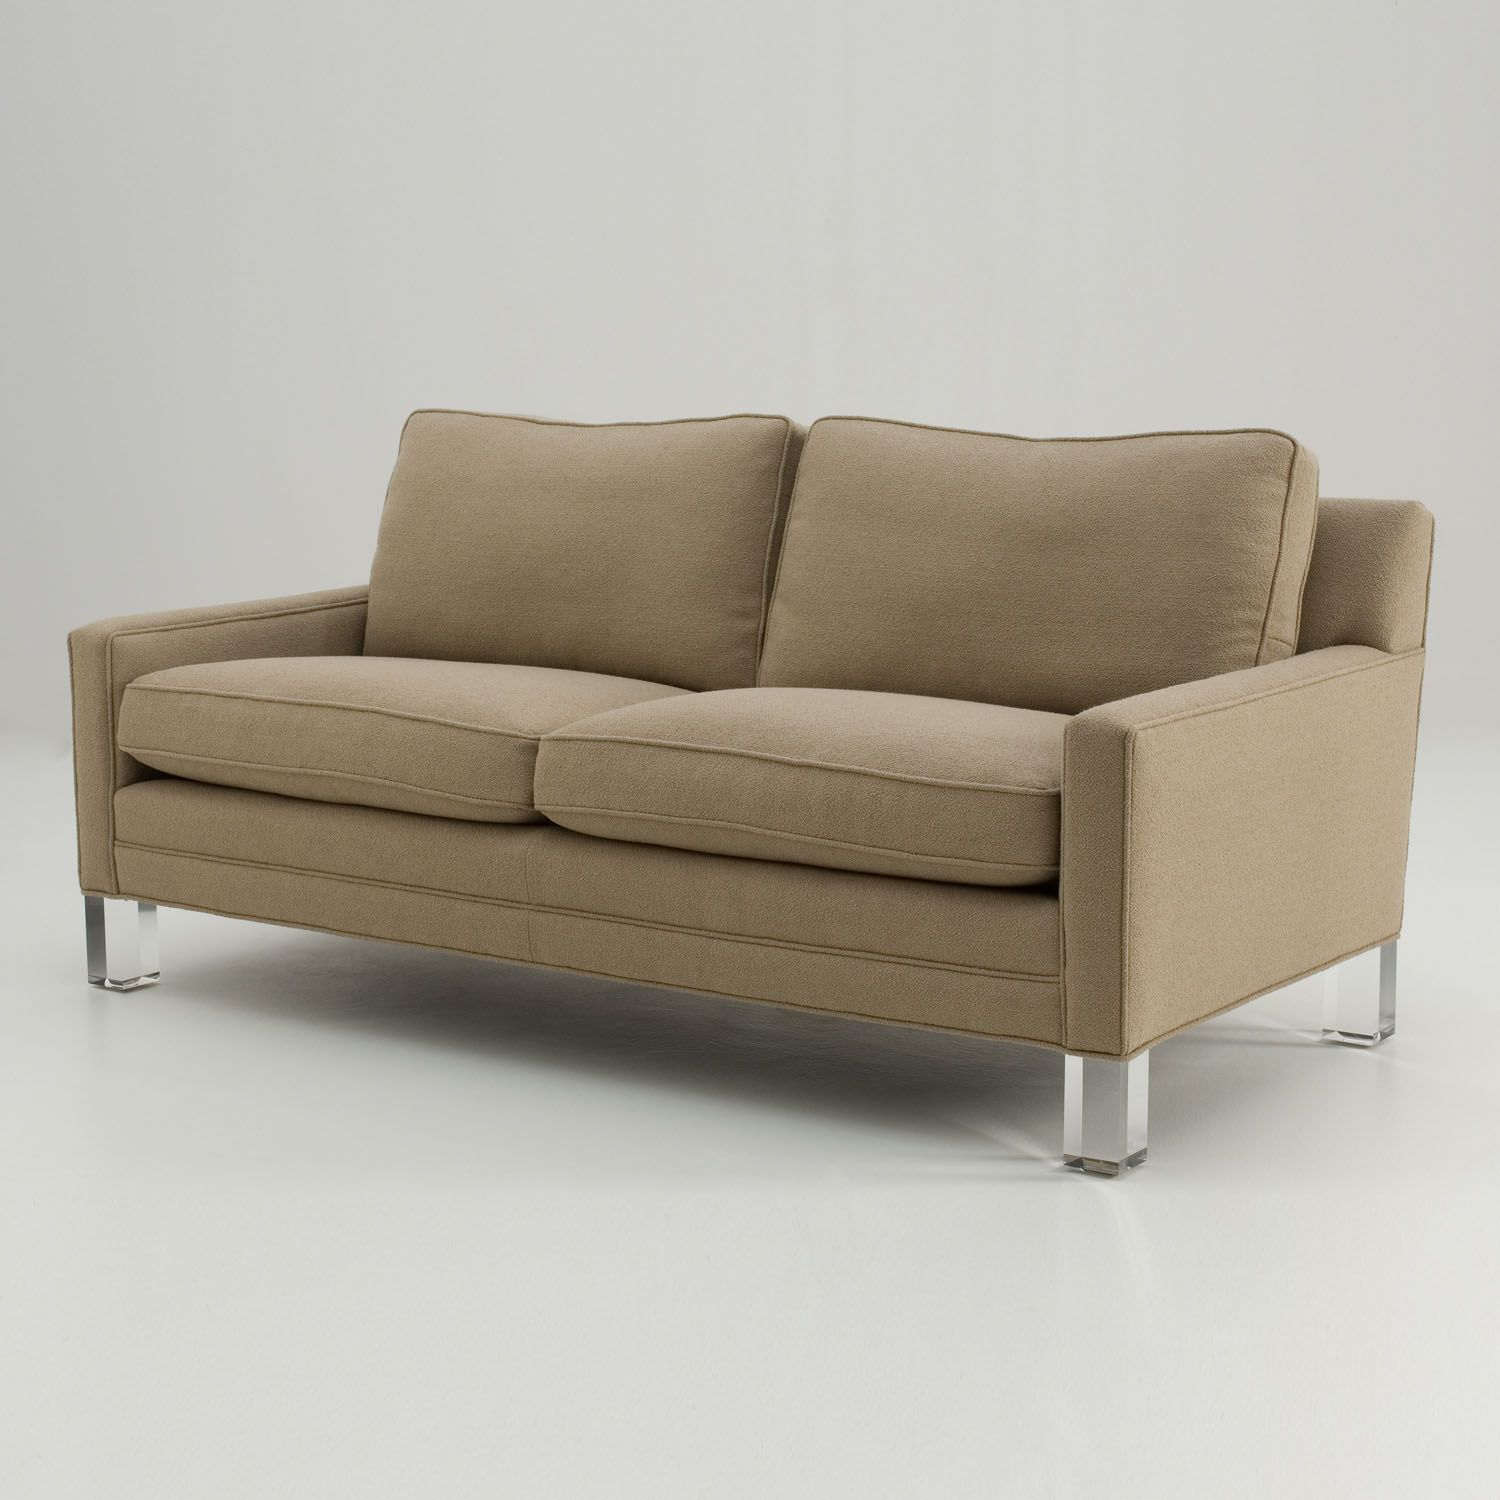 acrylic sofa legs Google Search For the Home